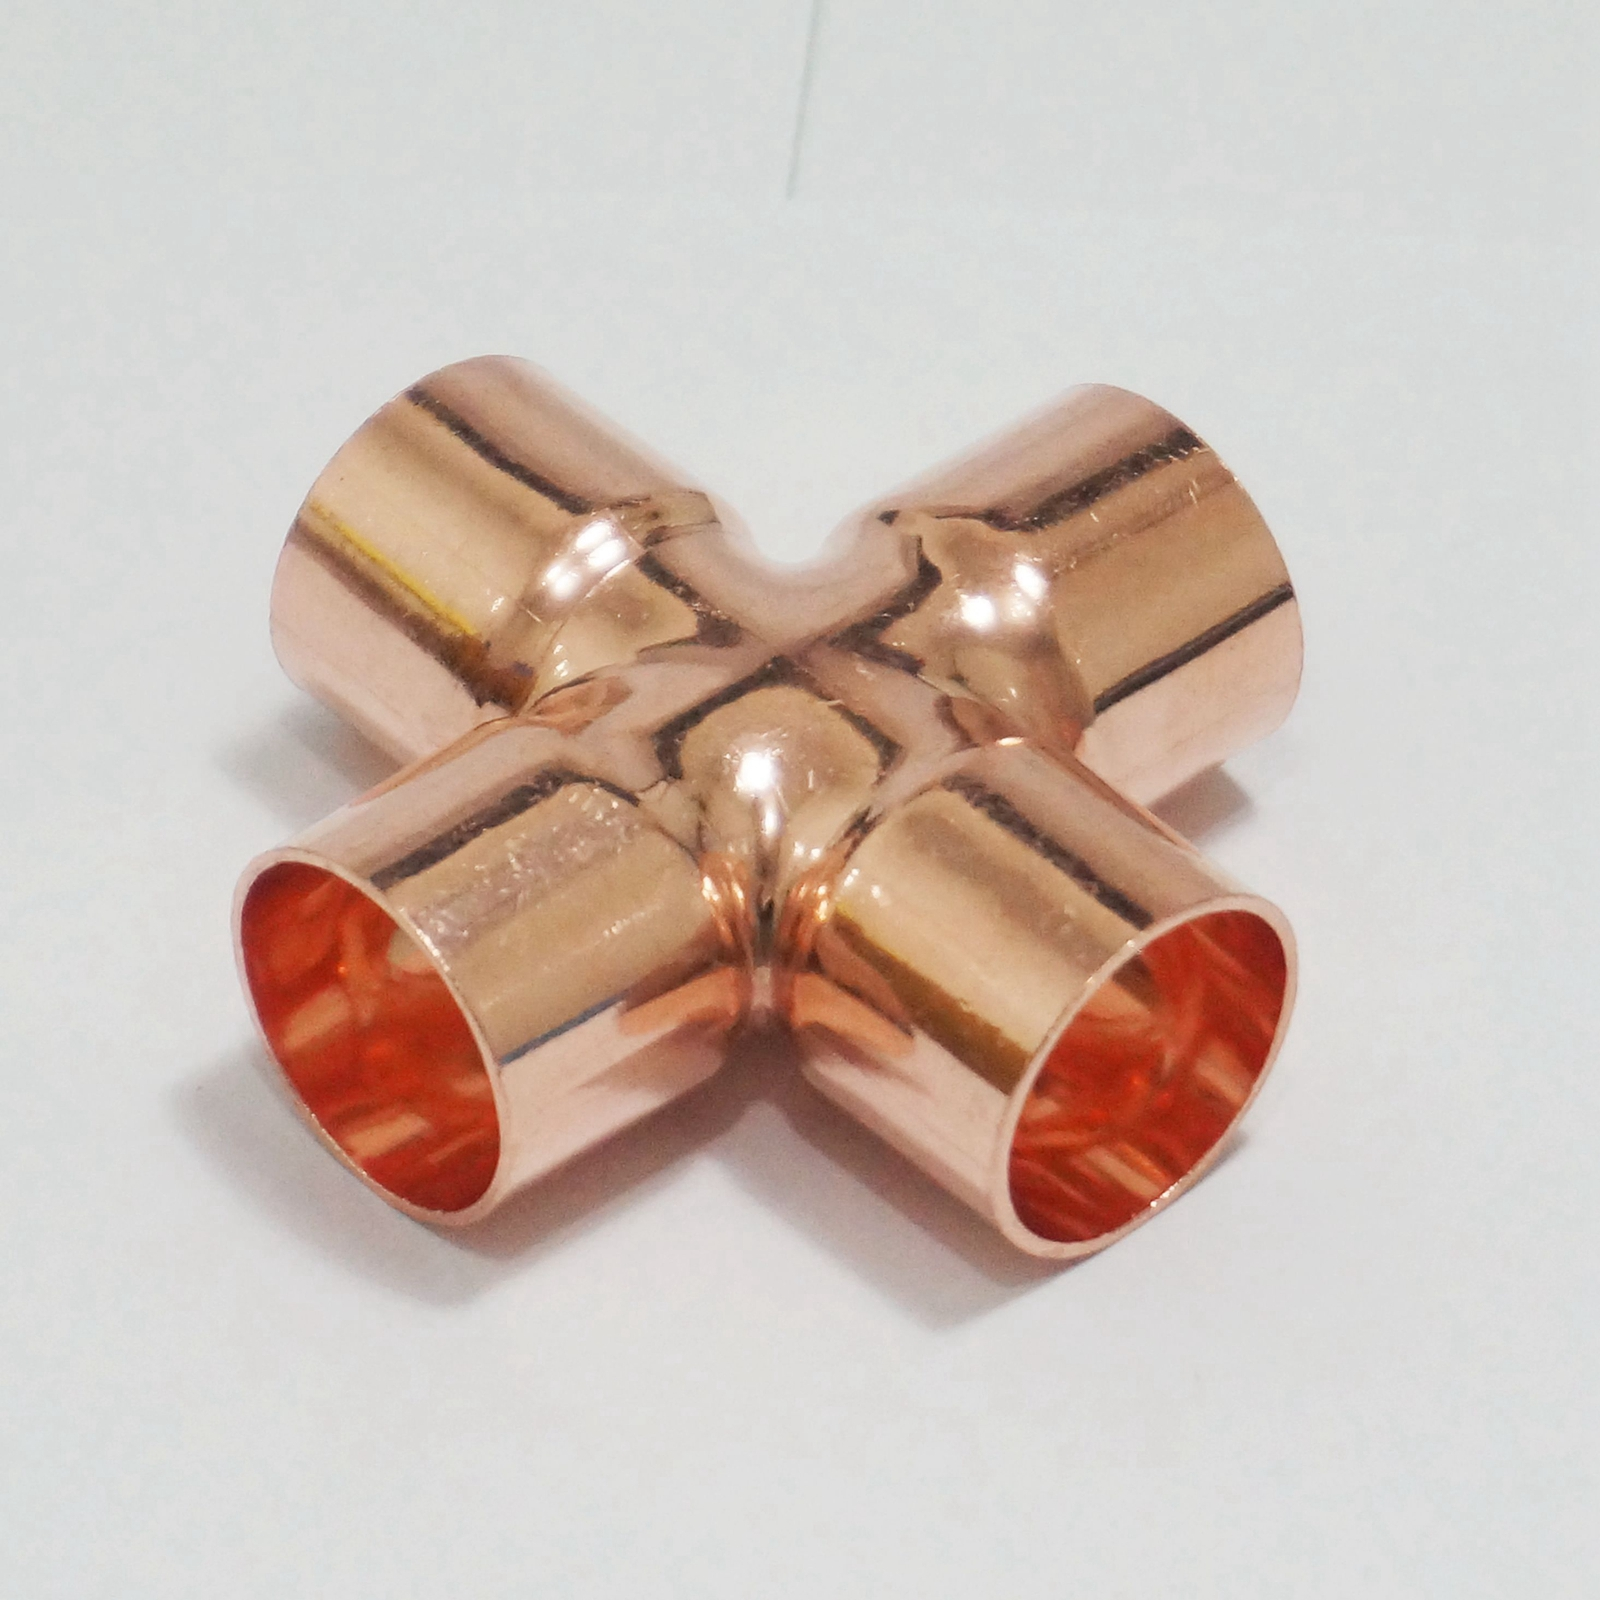 22x1mm Copper End Feed Equal Cross 4 Way Plumbing Pipe Fitting For Gas Water Oil